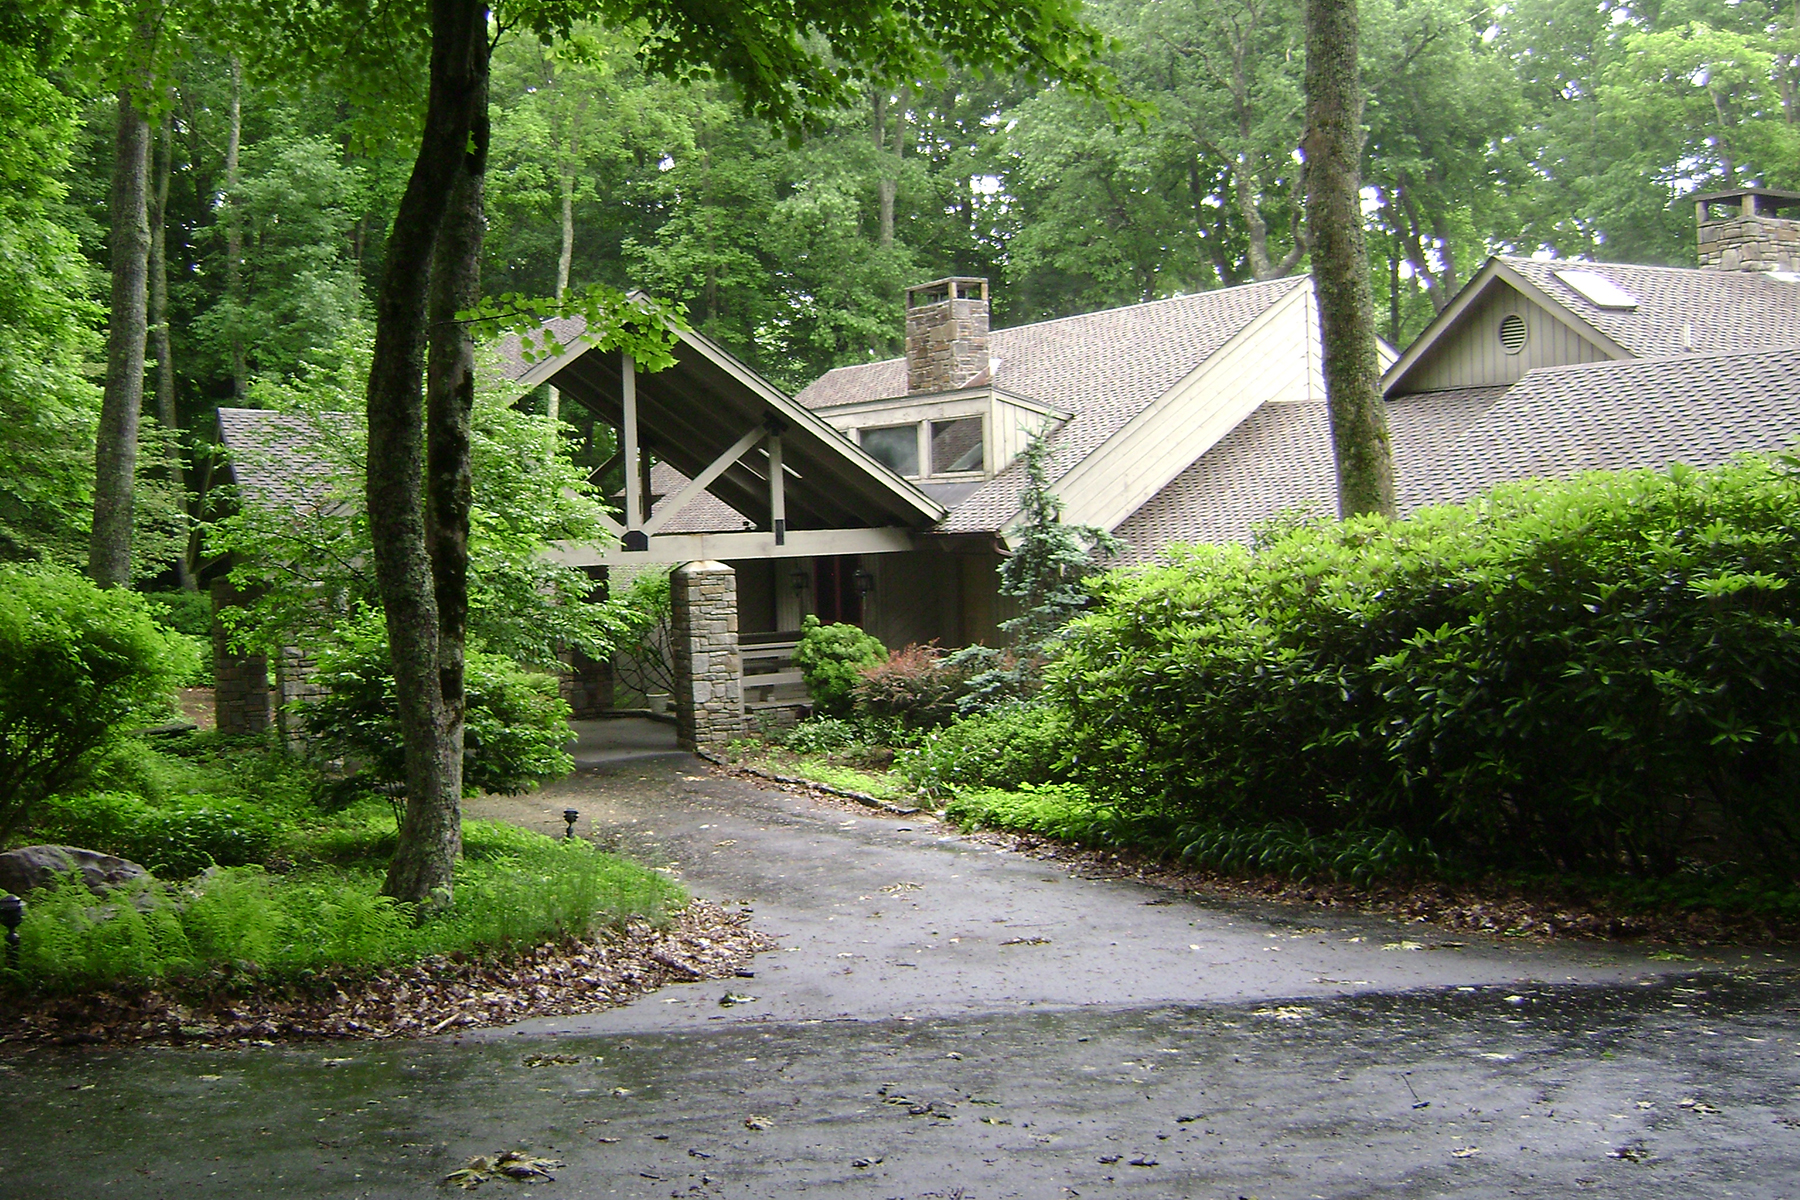 Single Family Home for Sale at LINVILLE - LINVILLE RIDGE 206 Dam Trail 2, Linville, North Carolina 28646 United States